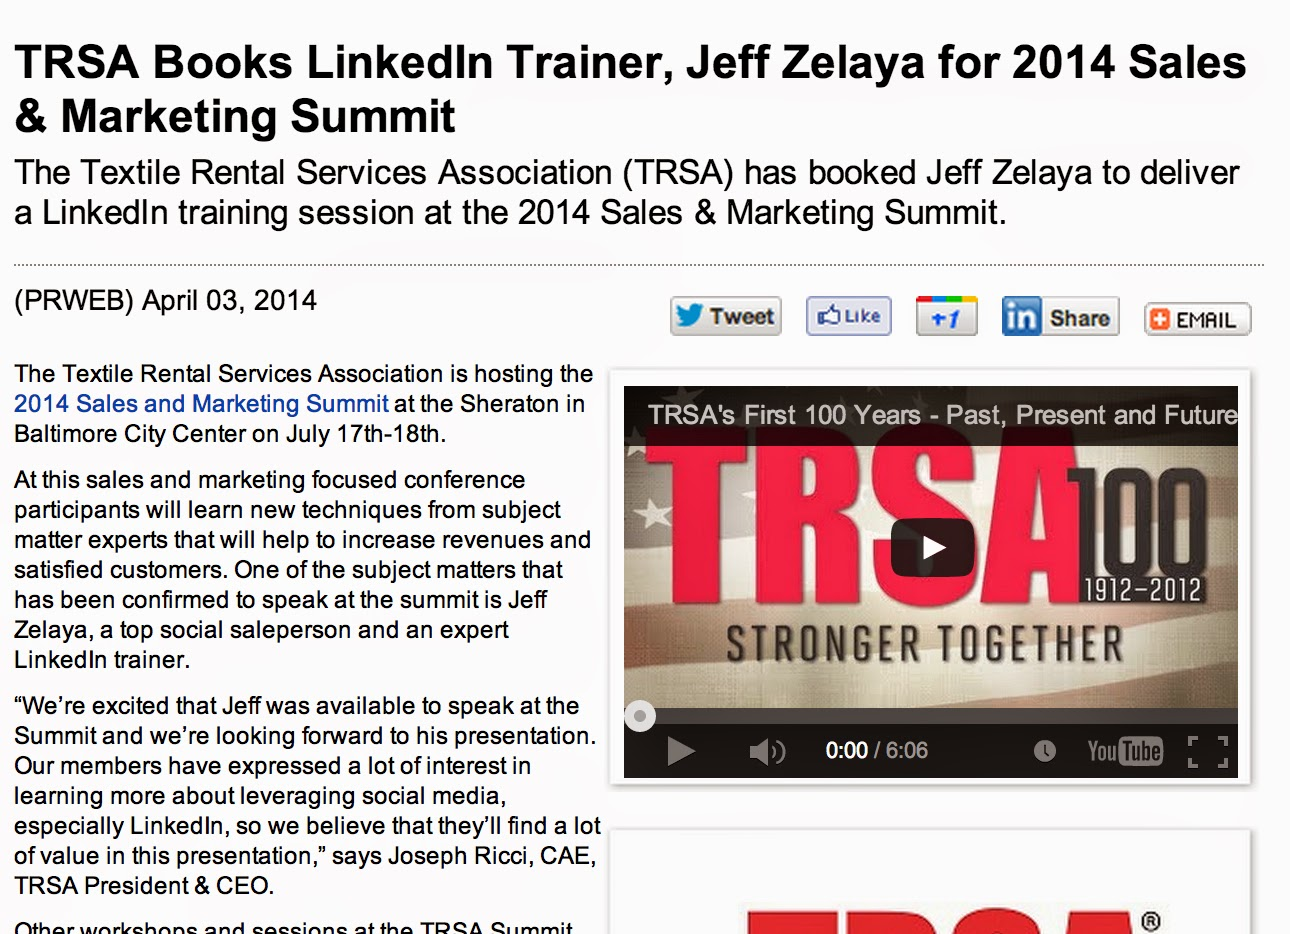 TRSA Books LinkedIn Trainer